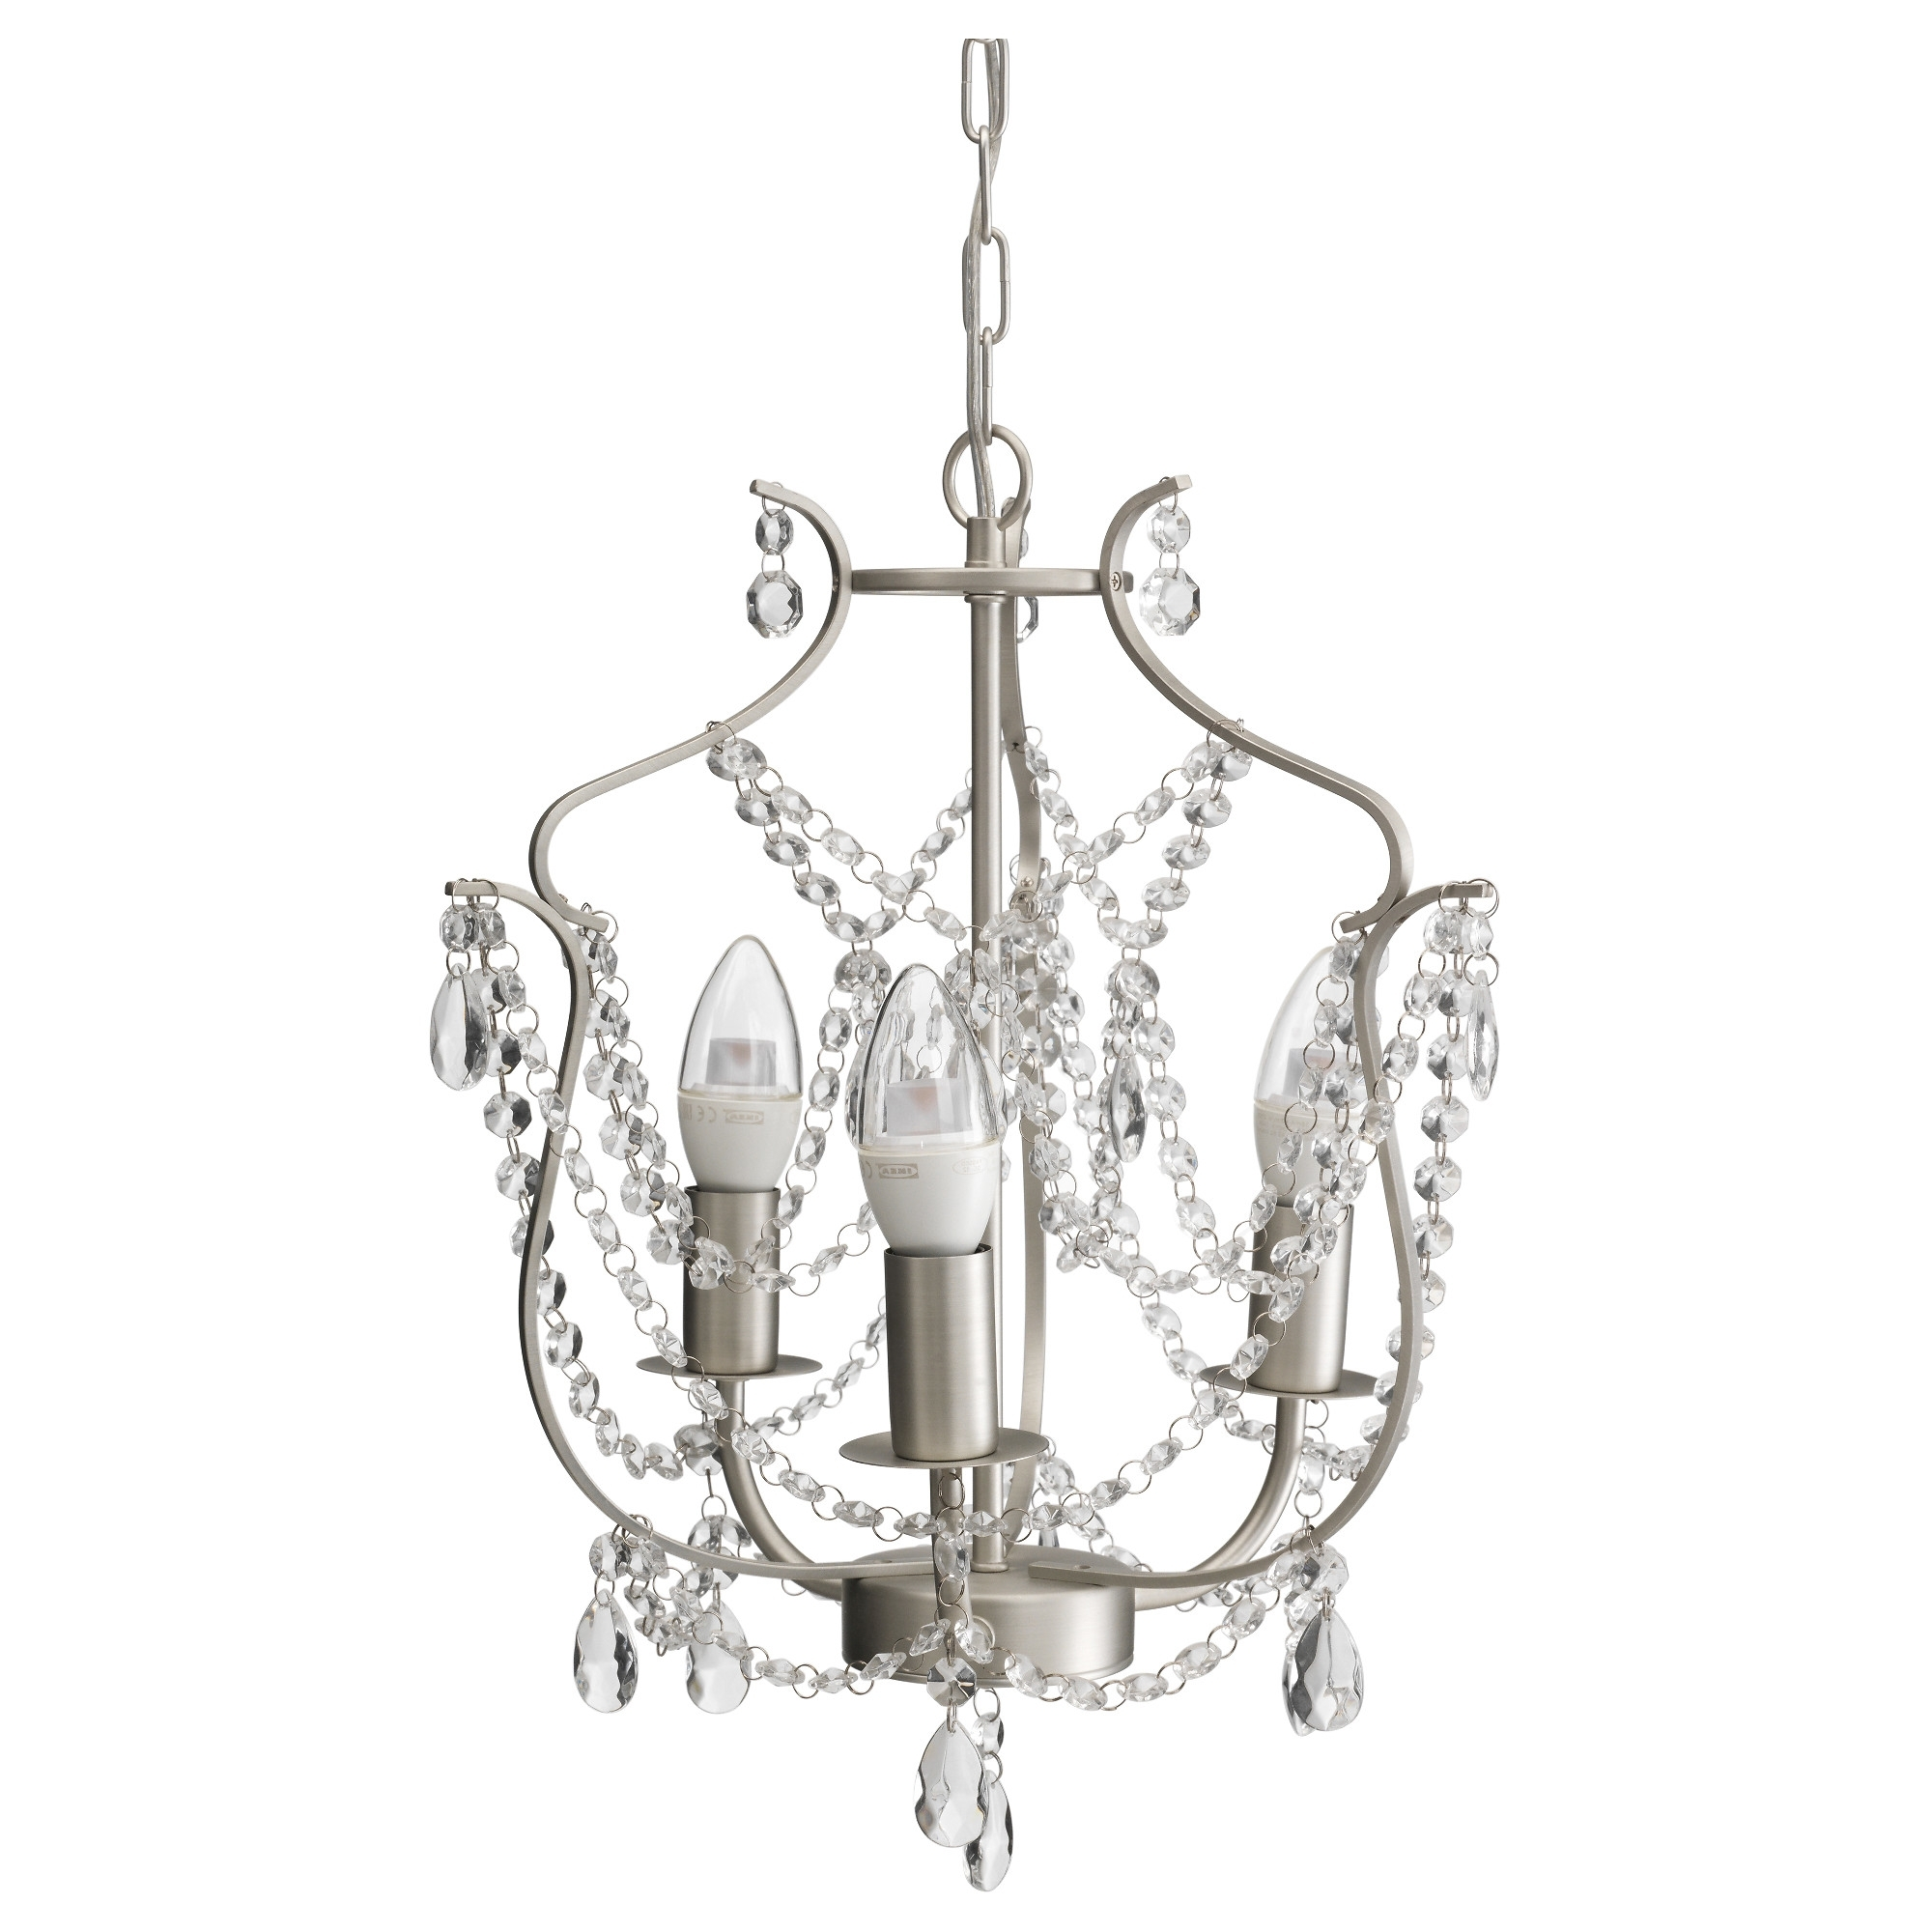 Most Popular Light : Mini Led Chandelier Kristaller Armed Ikea Dining Small With Trendy Chandeliers (View 14 of 20)